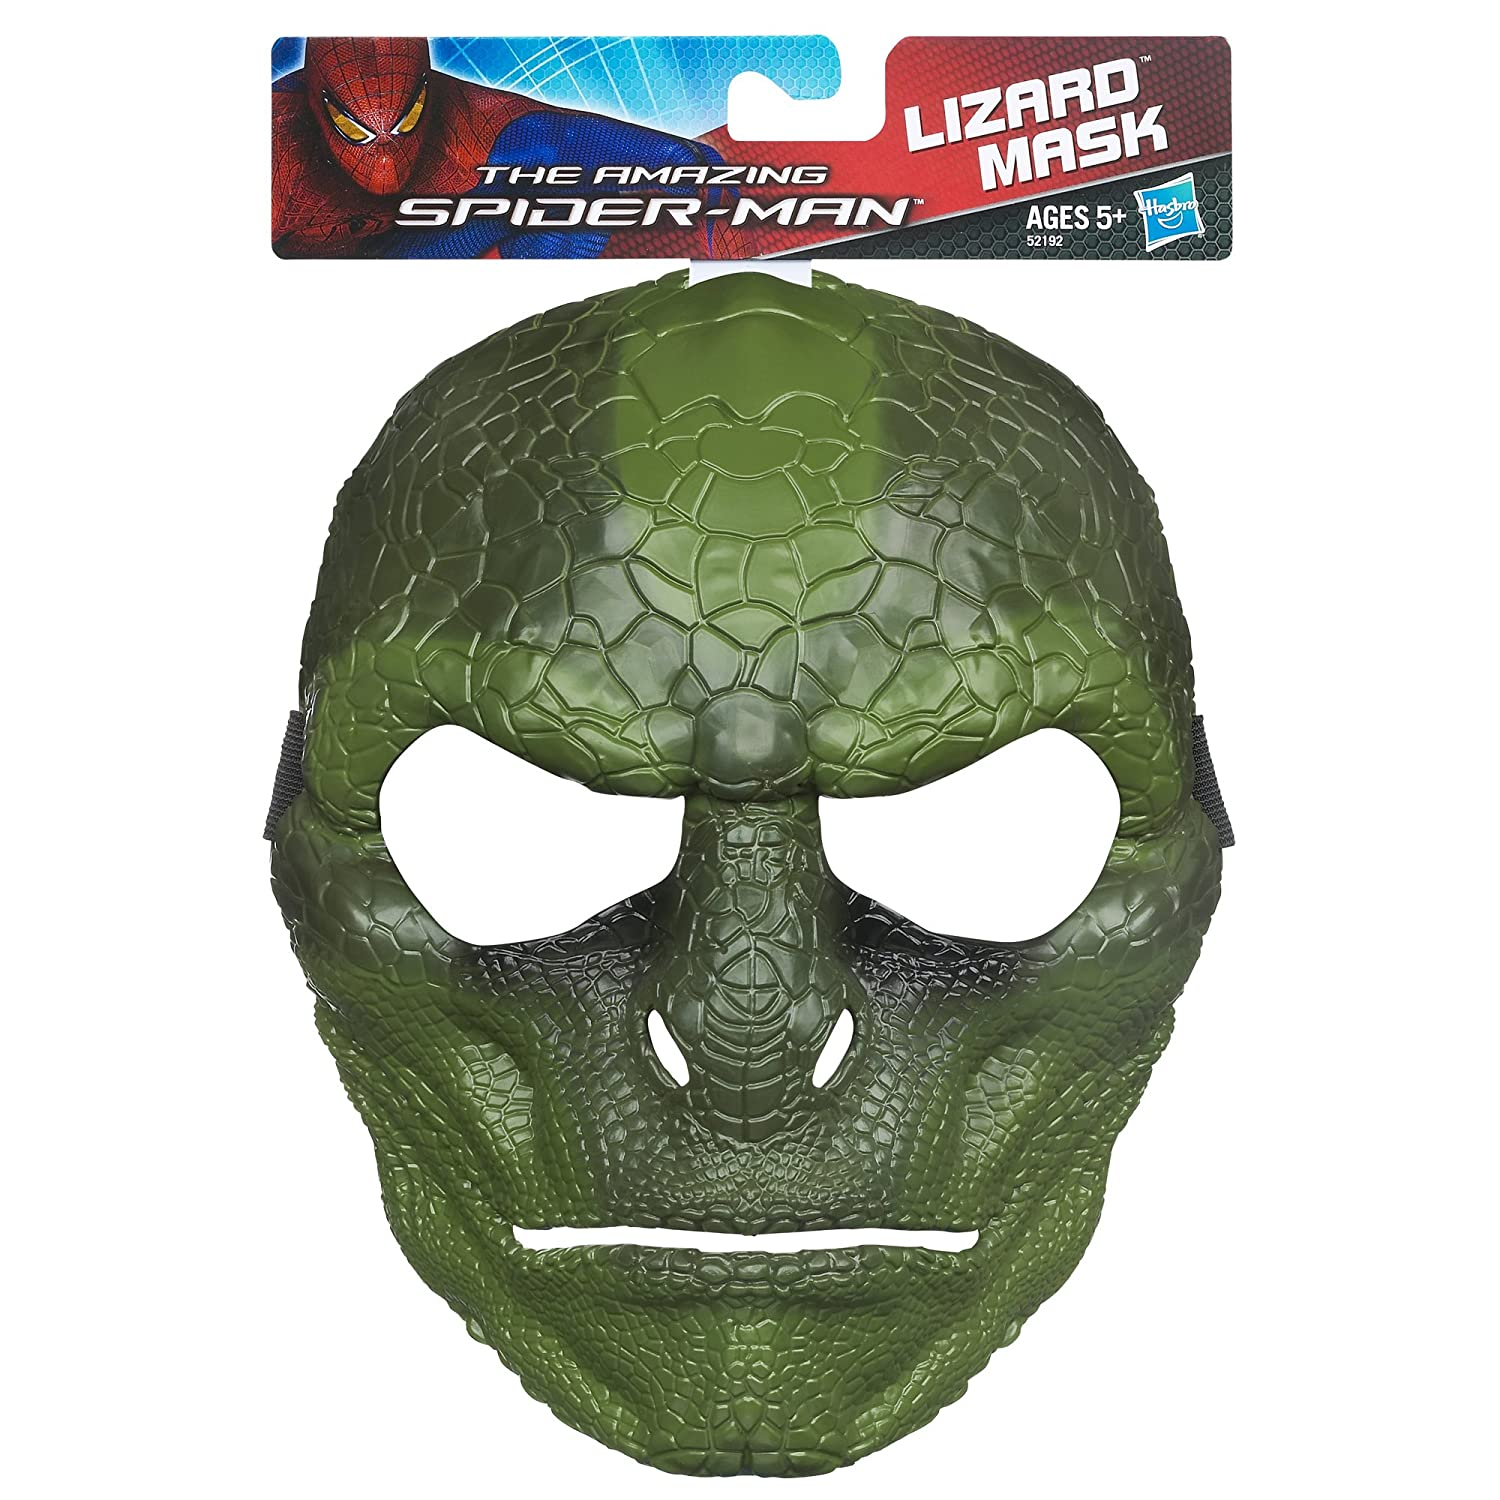 Amazon.com: The Amazing Spider-Man Lizard Mask: Toys & Games